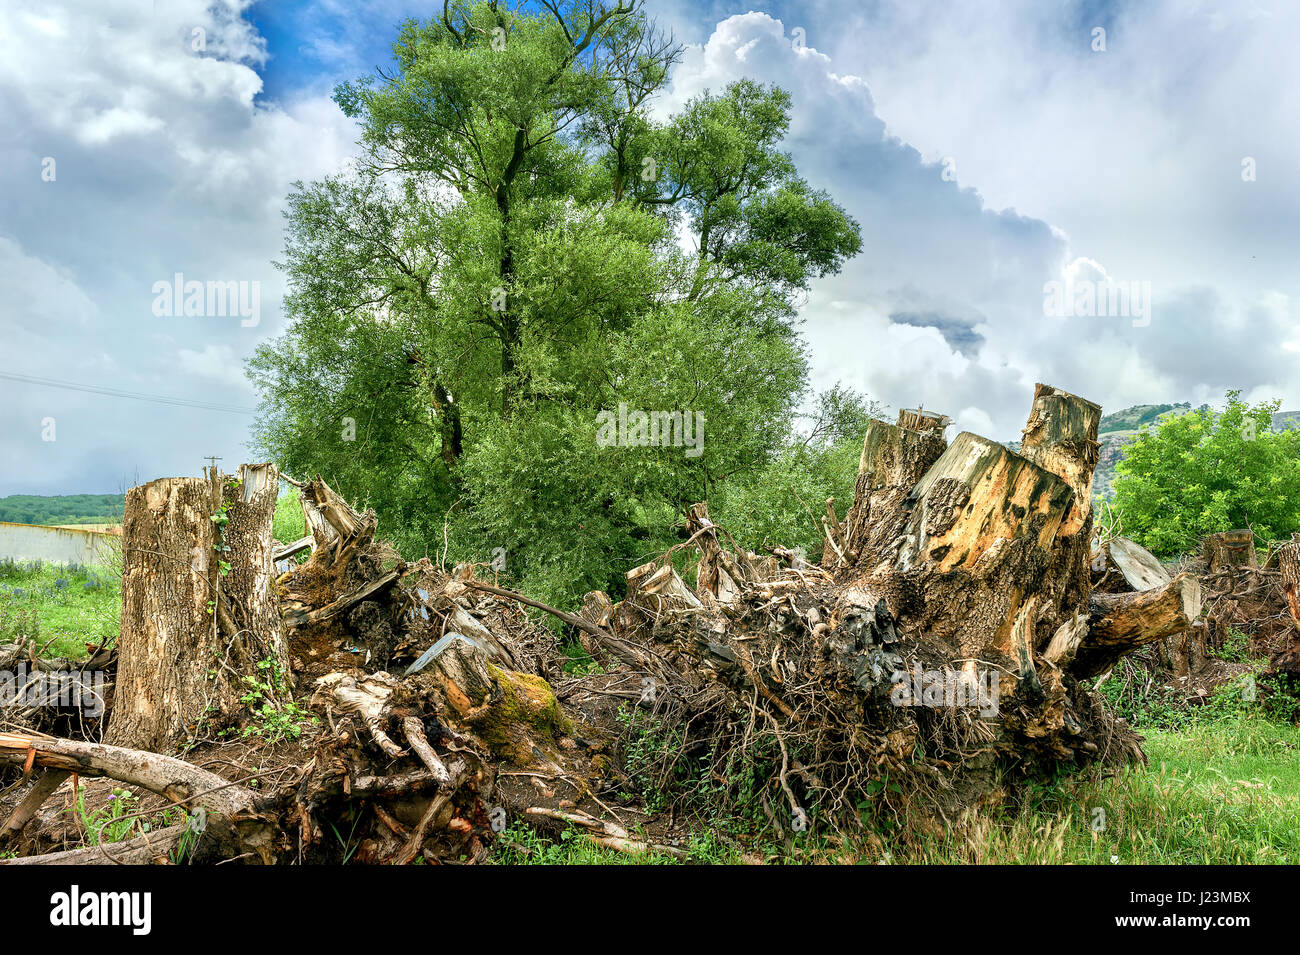 Landscape with old roots and healthy green tree. Ecology concept - Stock Image